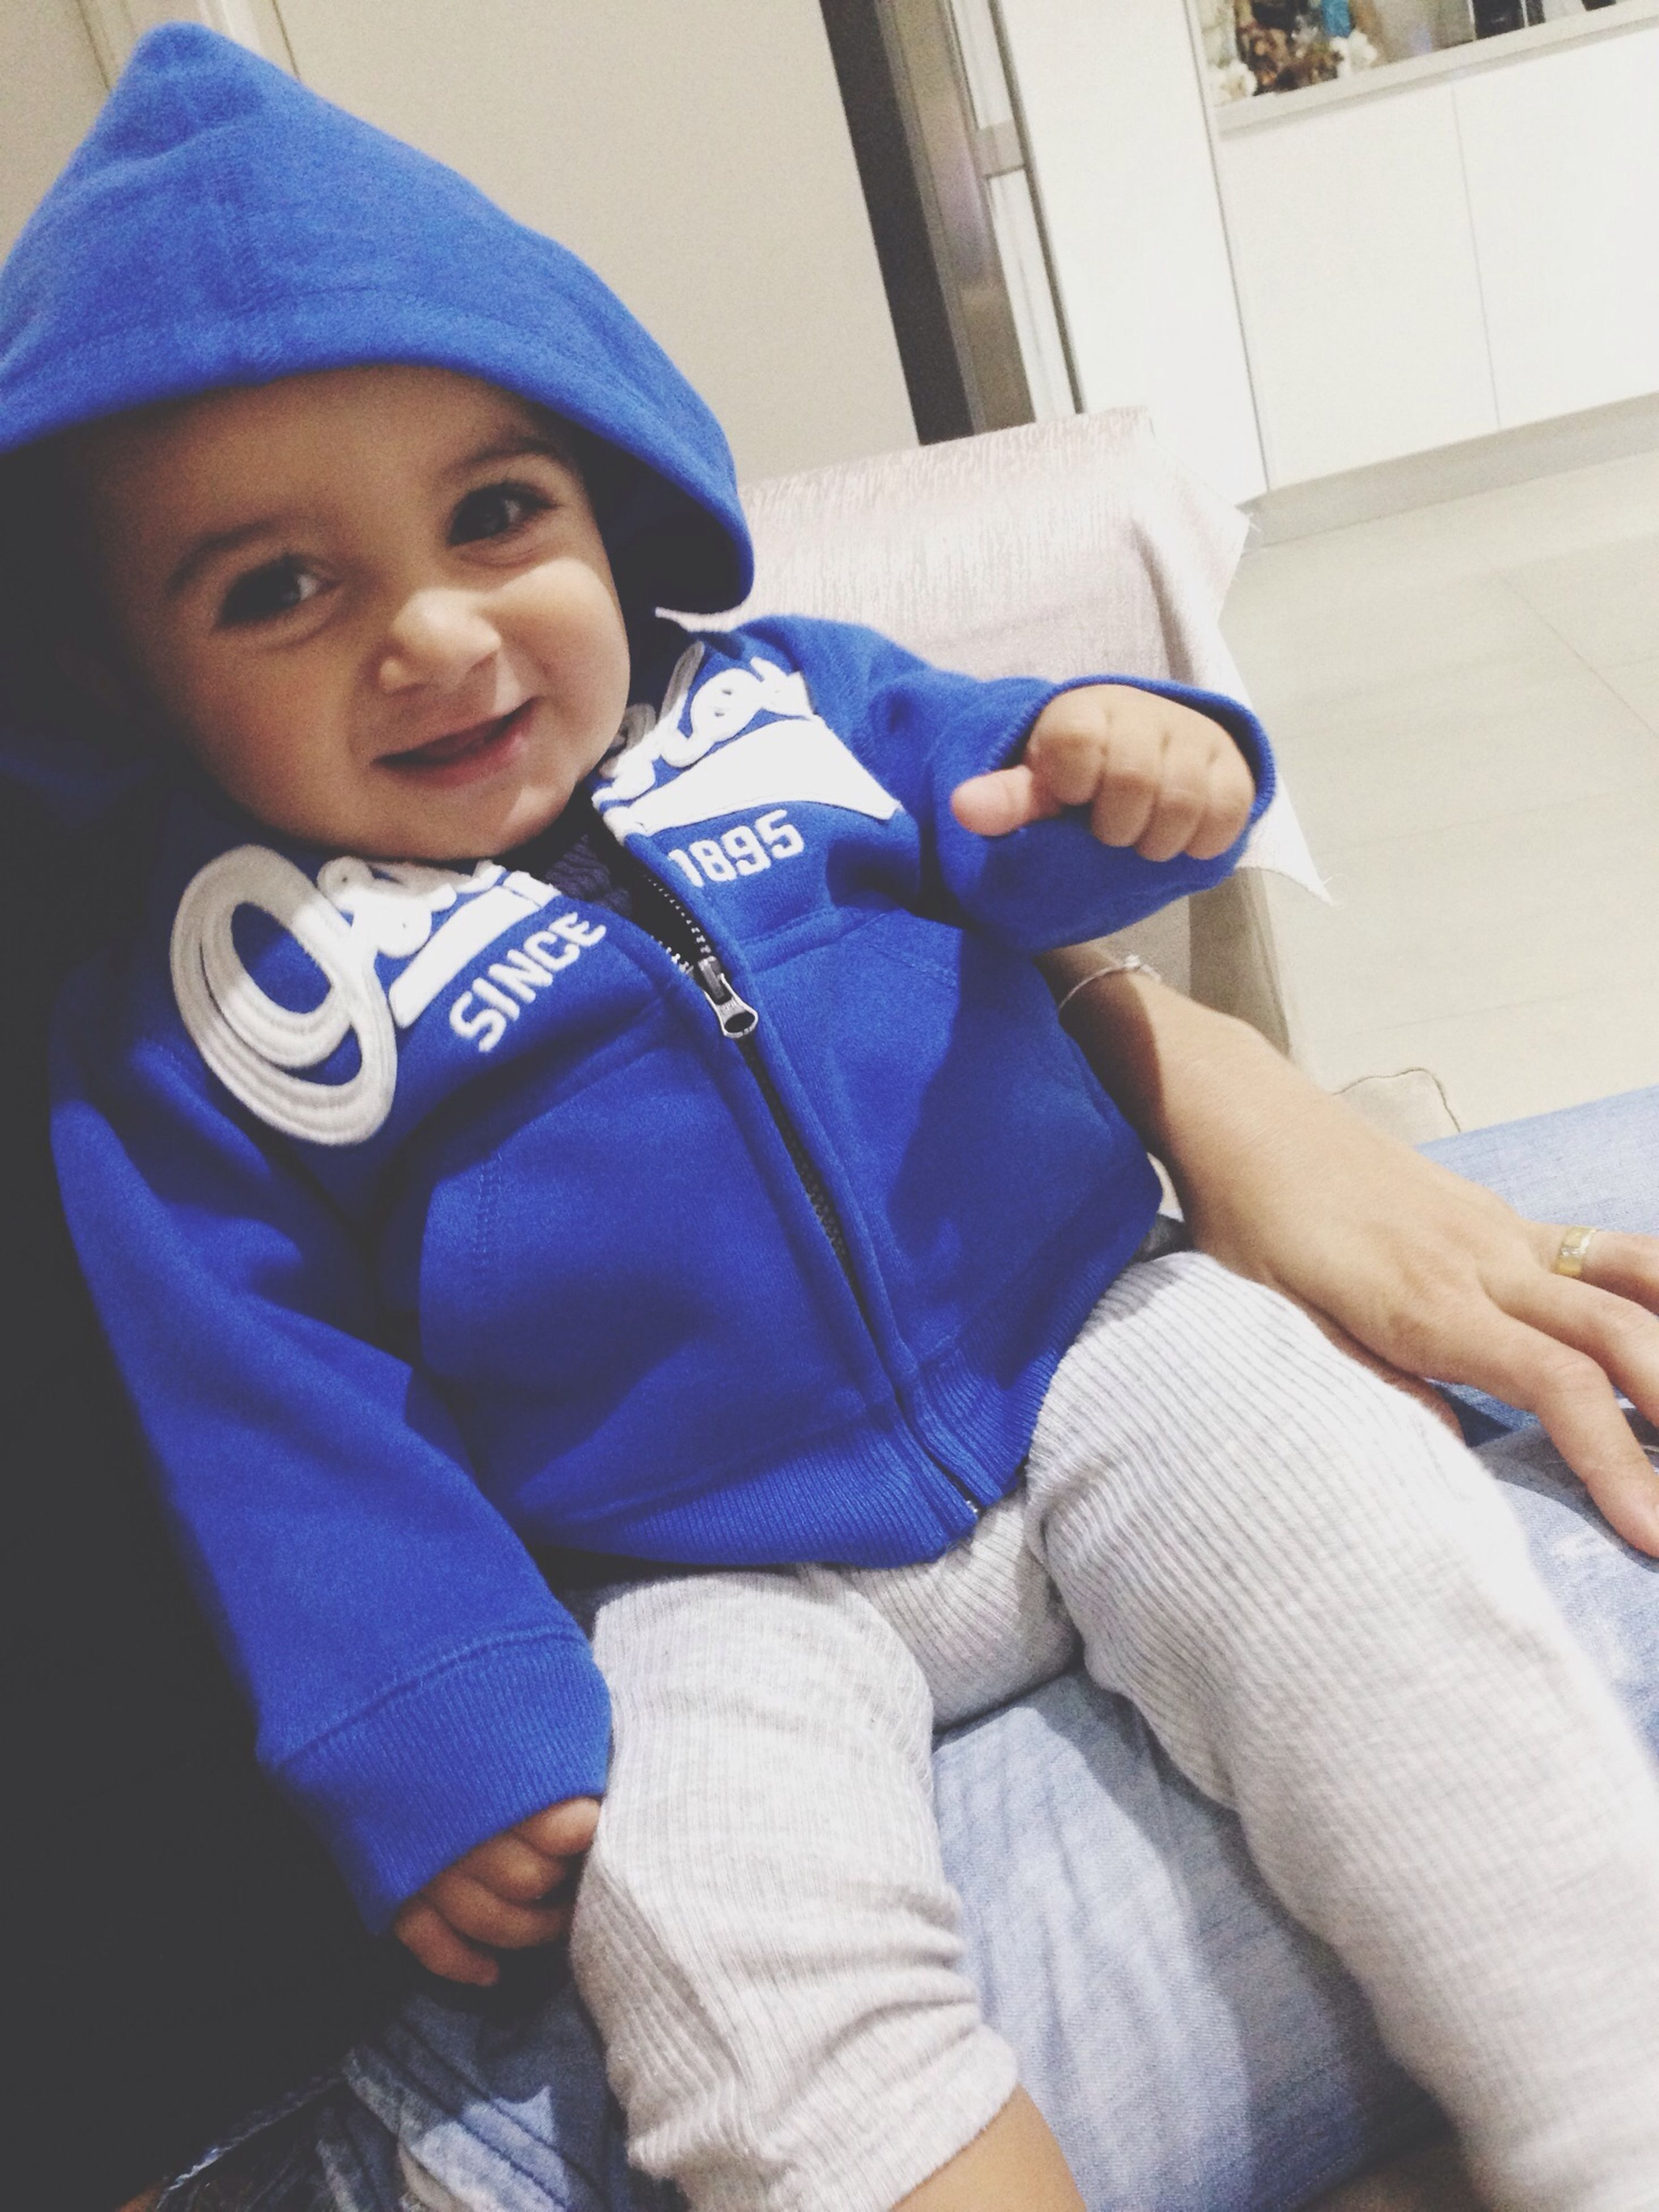 childhood, indoors, person, casual clothing, innocence, elementary age, cute, boys, lifestyles, toddler, babyhood, baby, leisure activity, home interior, relaxation, three quarter length, sitting, front view